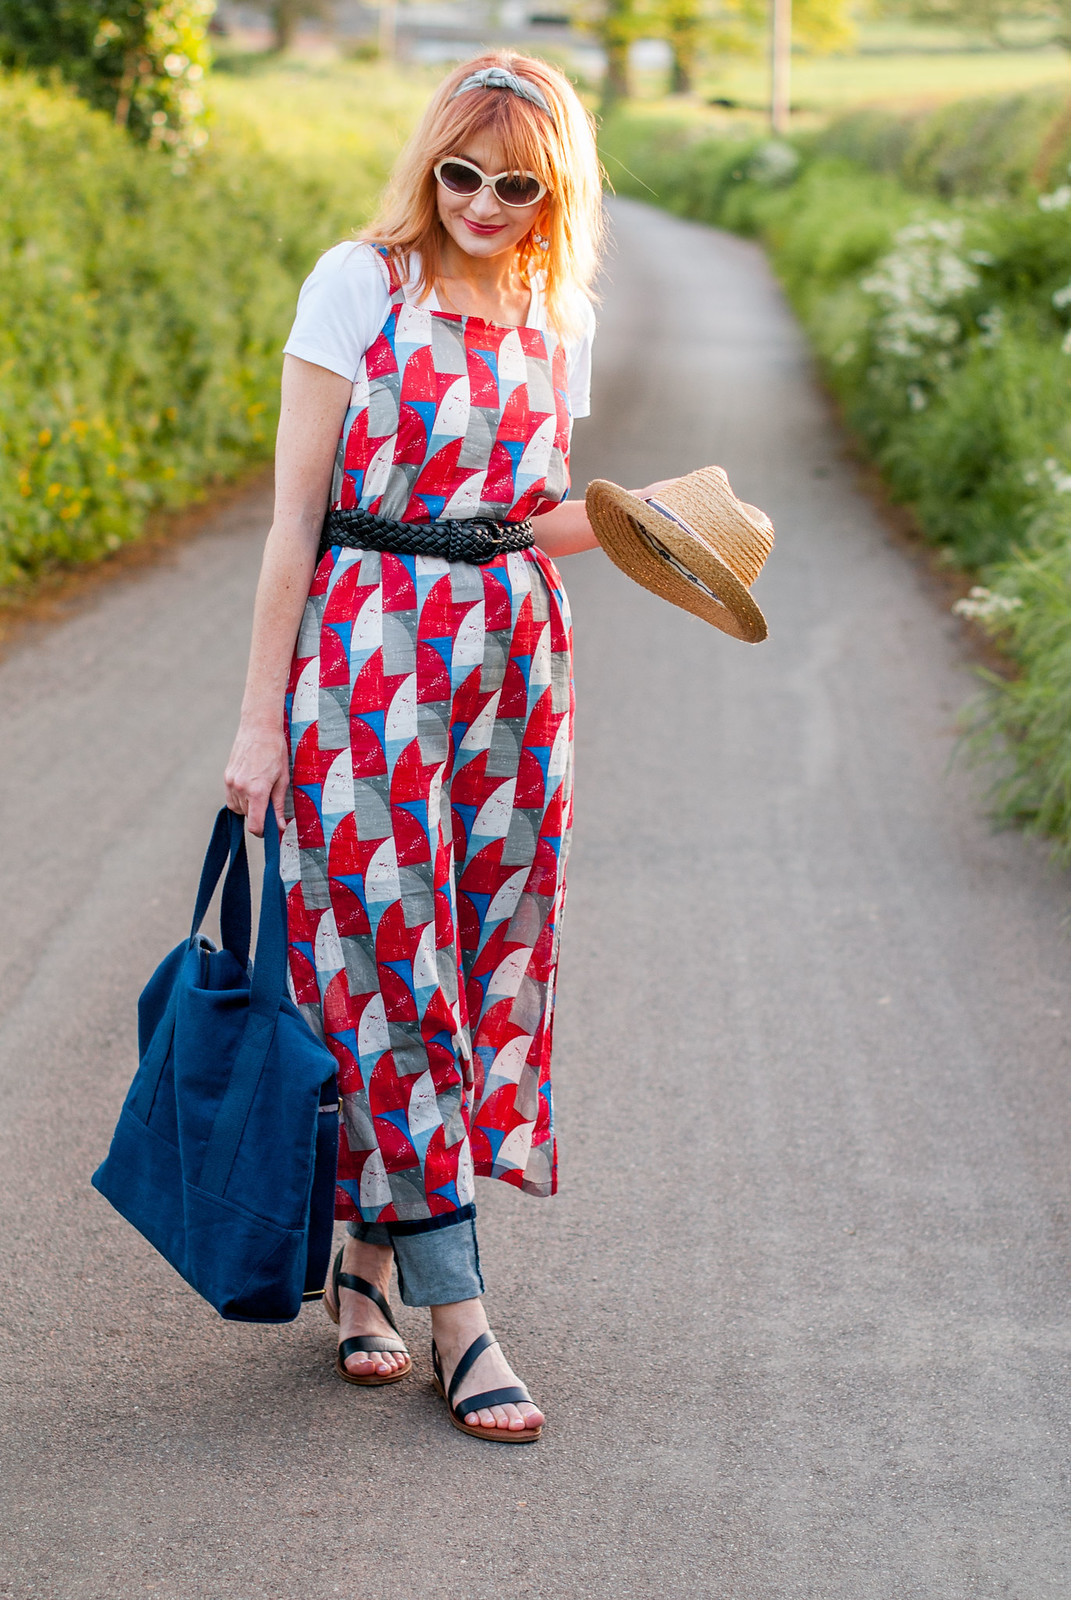 Summer dressing: Strappy printed maxi dress over jeans and white t-shirt \ retro styling \ preppy style | Not Dressed As Lamb, over 40 blog